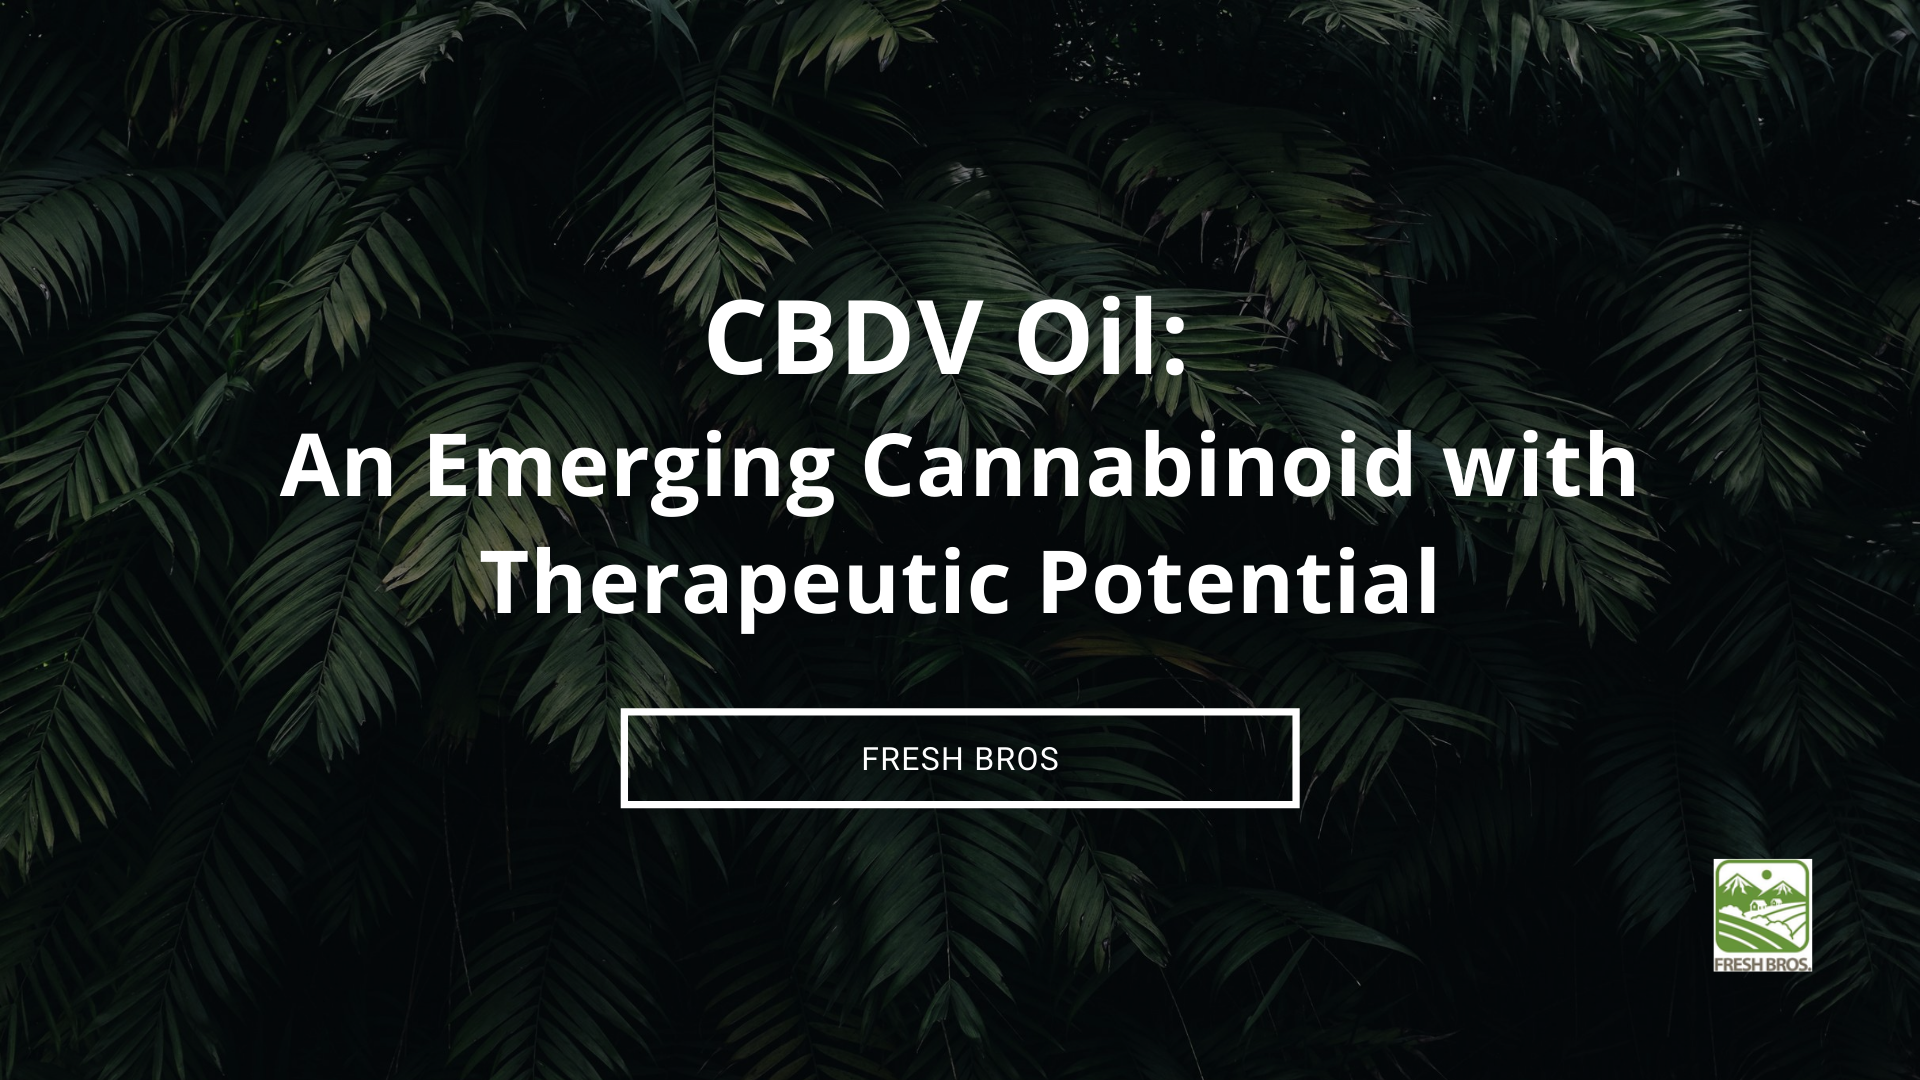 CBDV Oil: An Emerging Cannabinoid with Therapeutic Potential